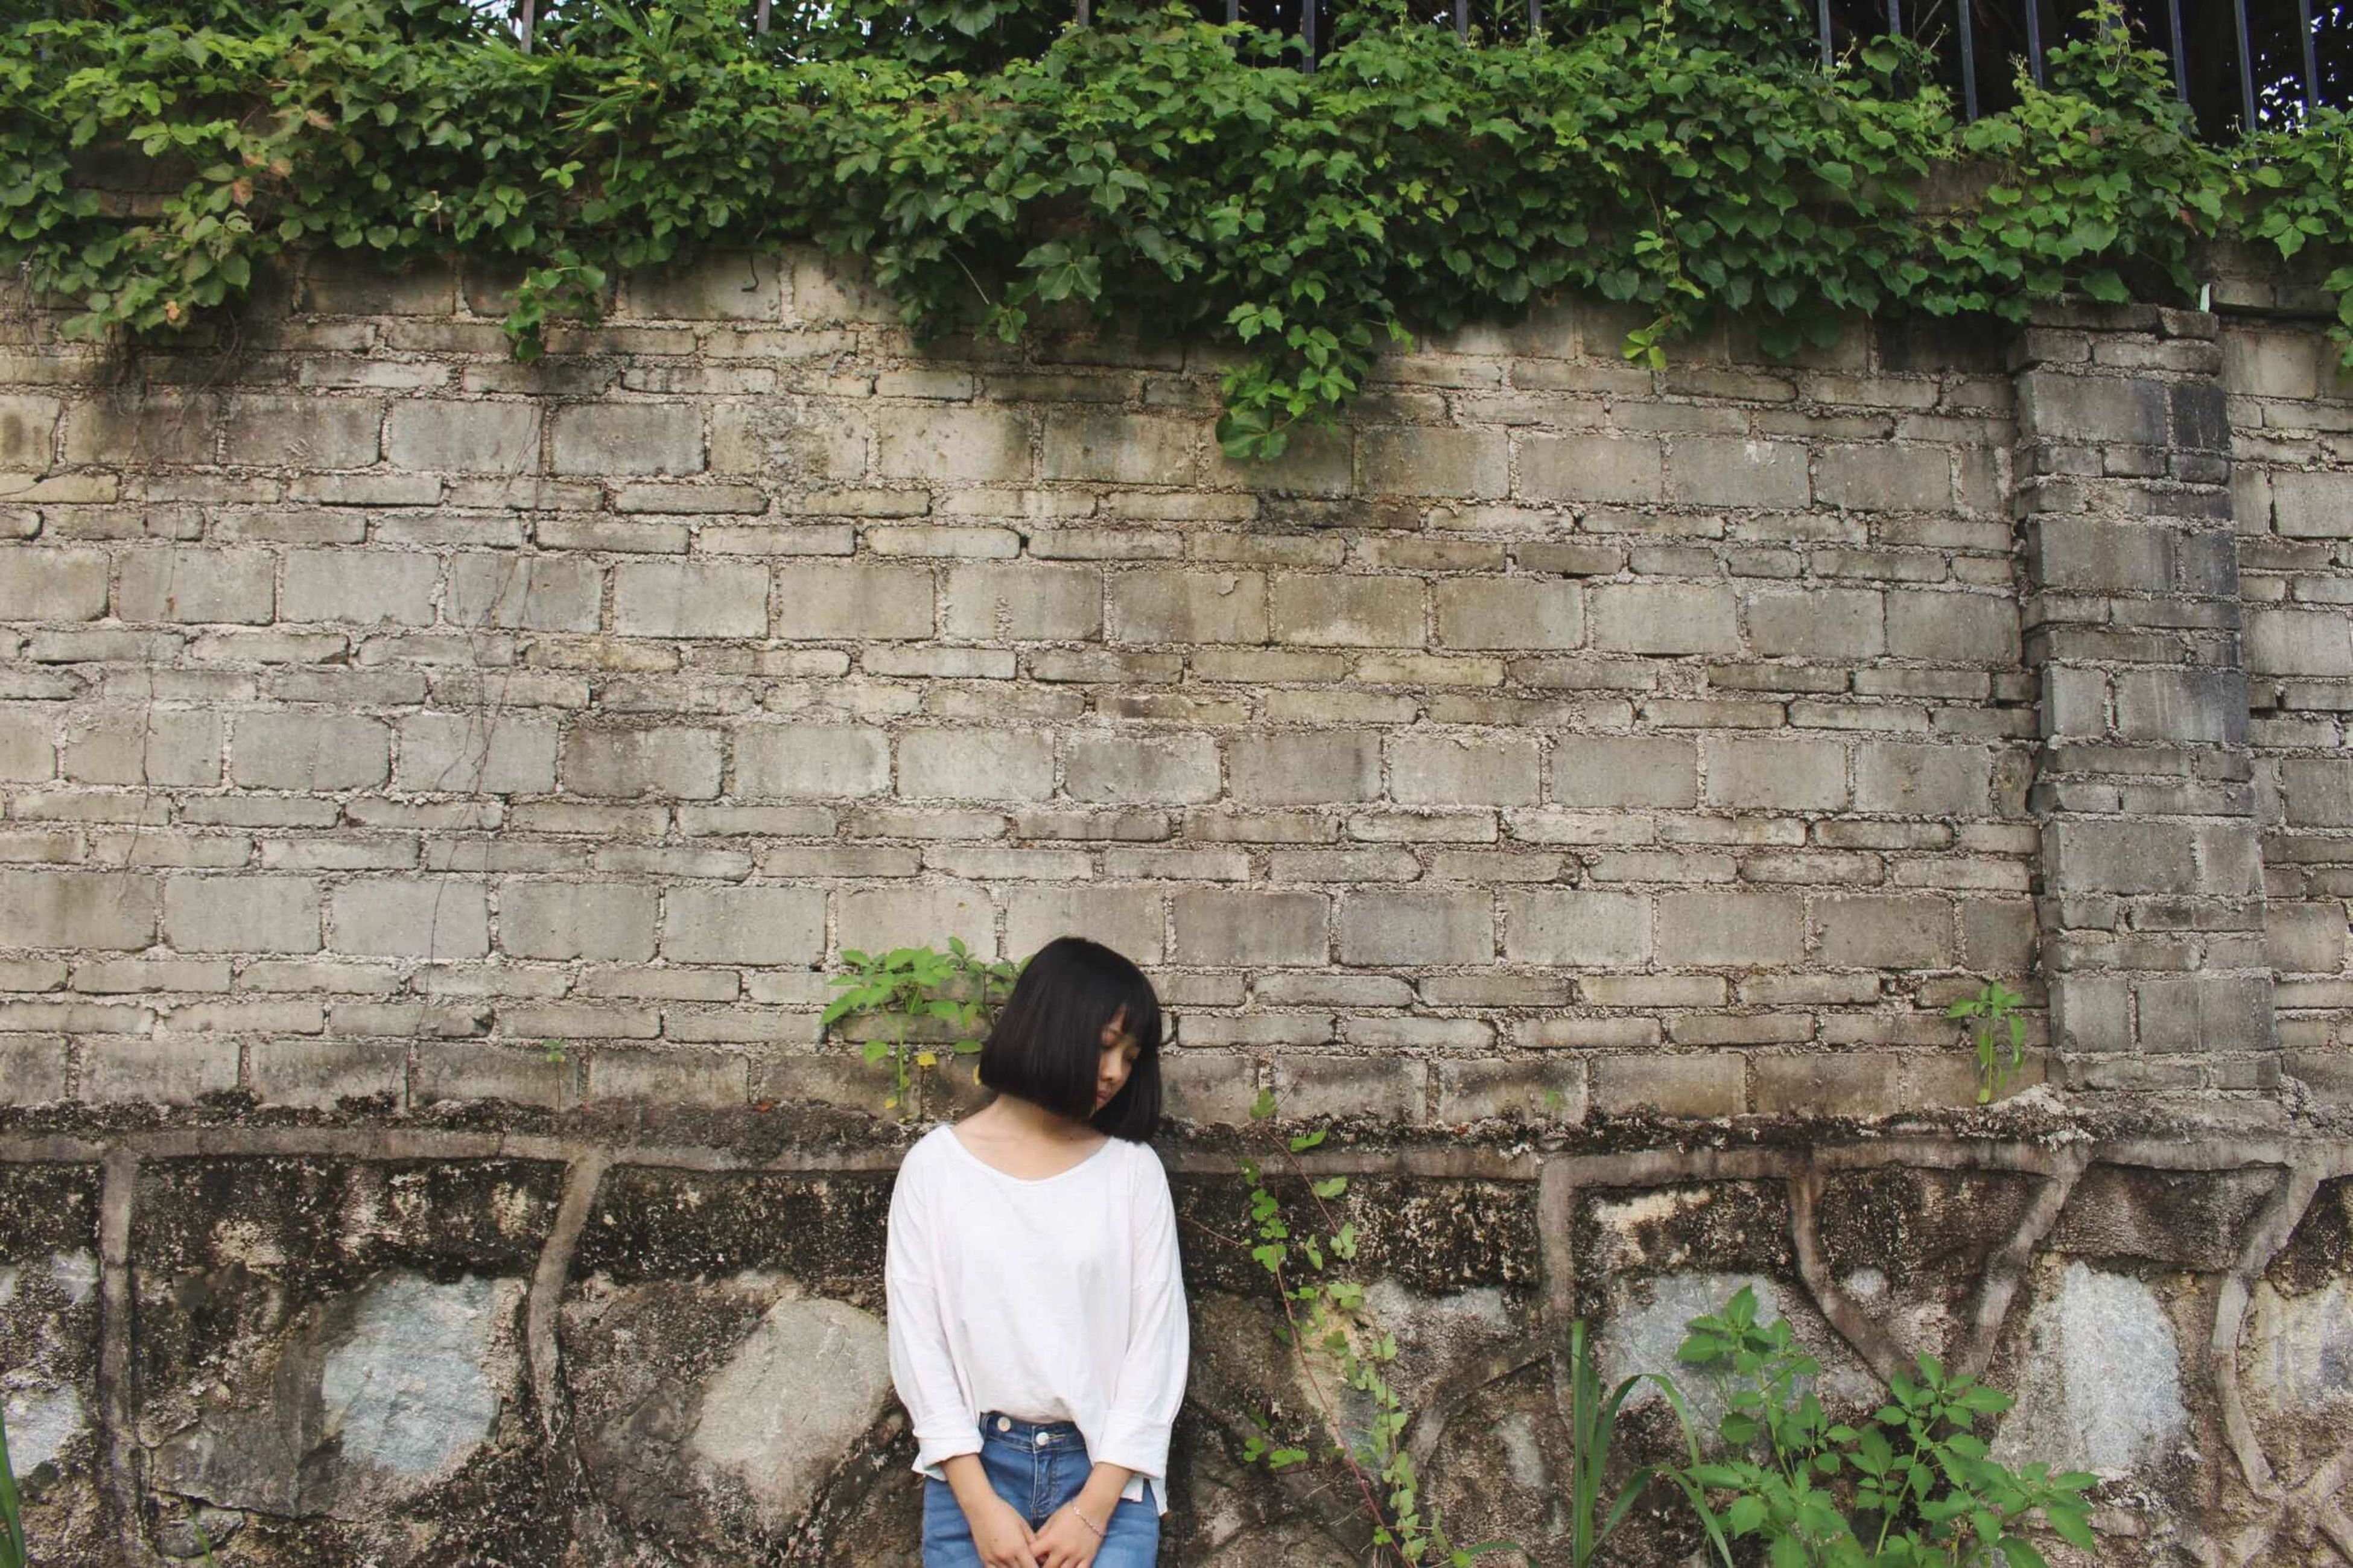 lifestyles, casual clothing, leisure activity, standing, built structure, architecture, wall - building feature, stone wall, plant, rear view, full length, building exterior, brick wall, three quarter length, person, young adult, wall, day